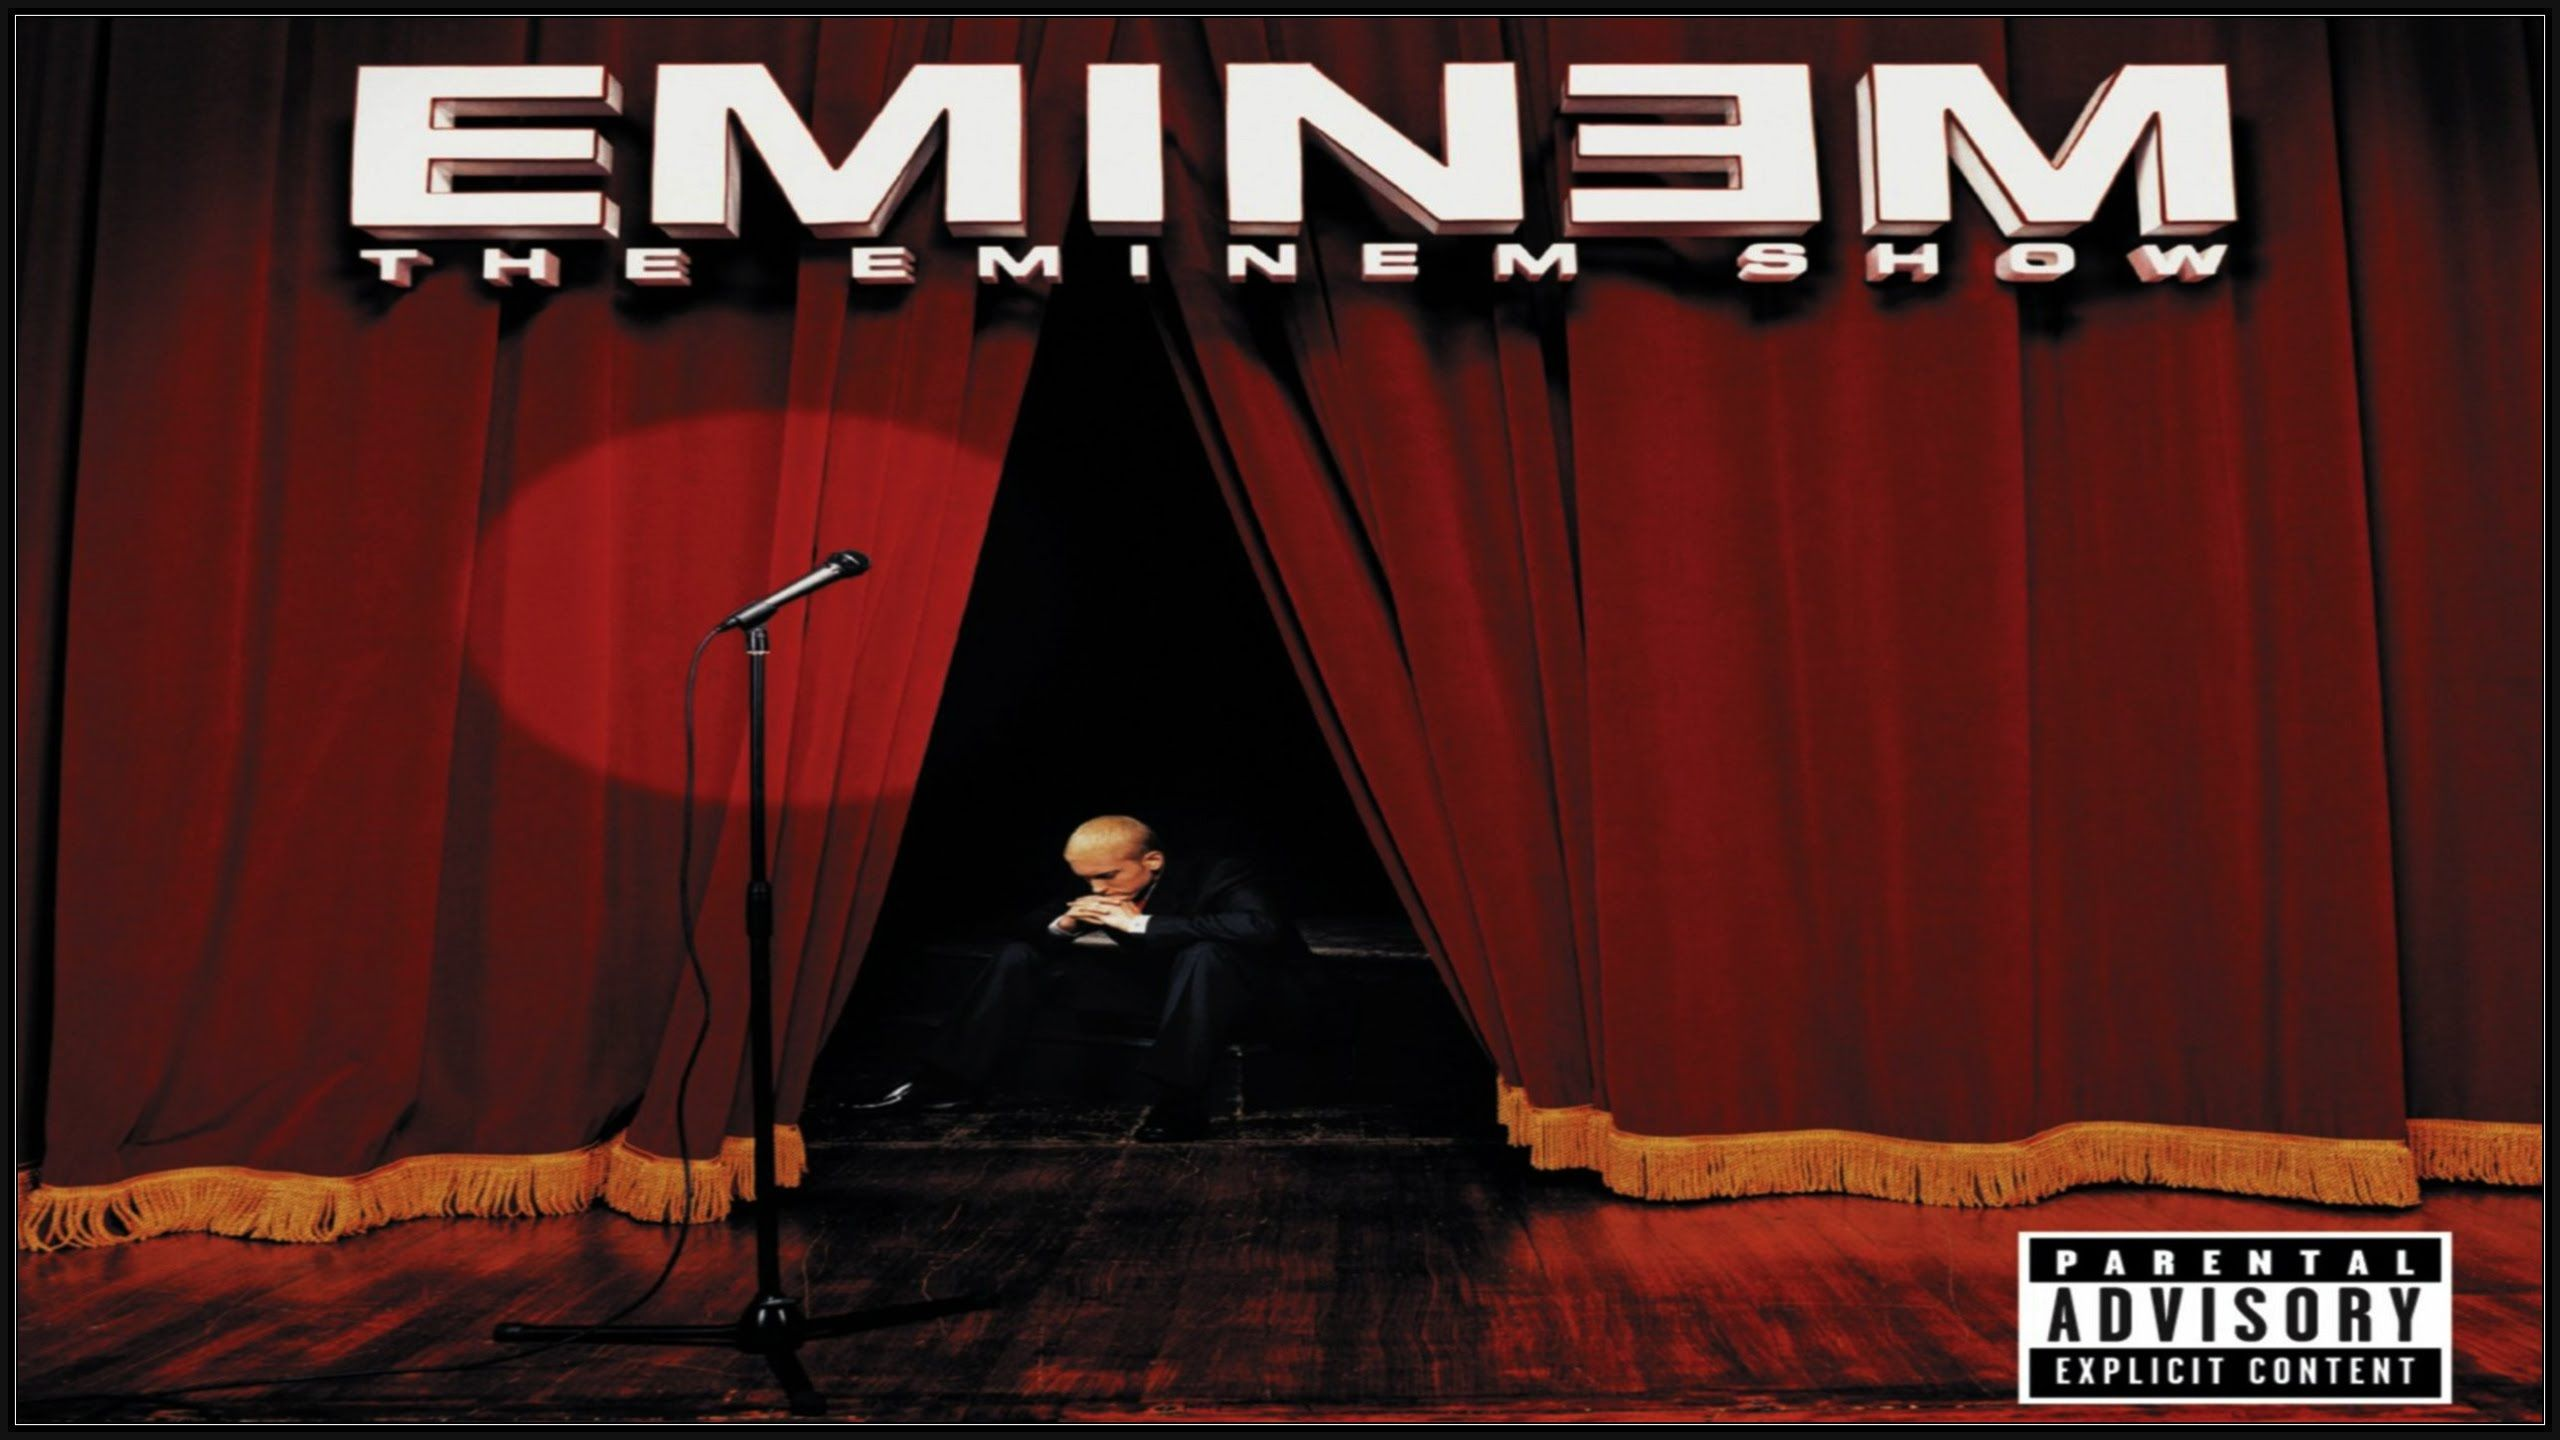 Eminem The Eminem Show (Full Album) HD Eminem songs